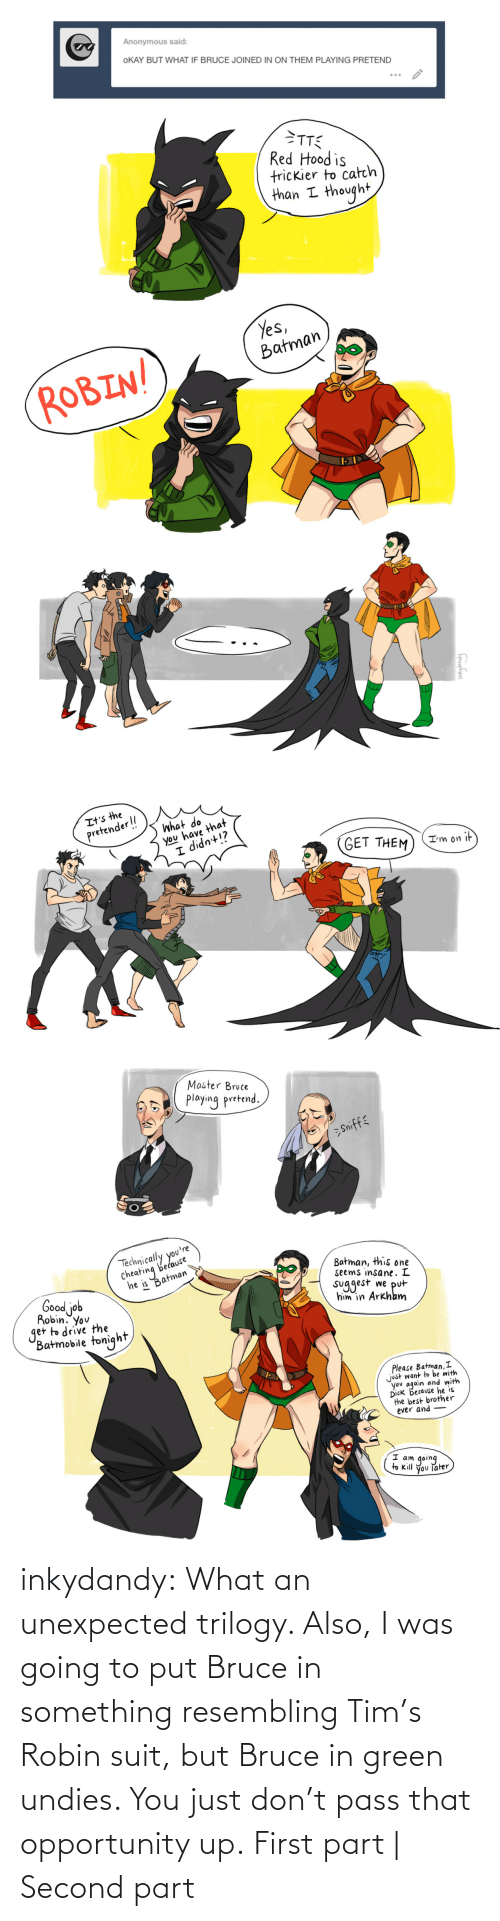 You Just: inkydandy: What an unexpected trilogy. Also, I was going to put Bruce in something resembling Tim's Robin suit, but Bruce in green undies. You just don't pass that opportunity up. First part | Second part